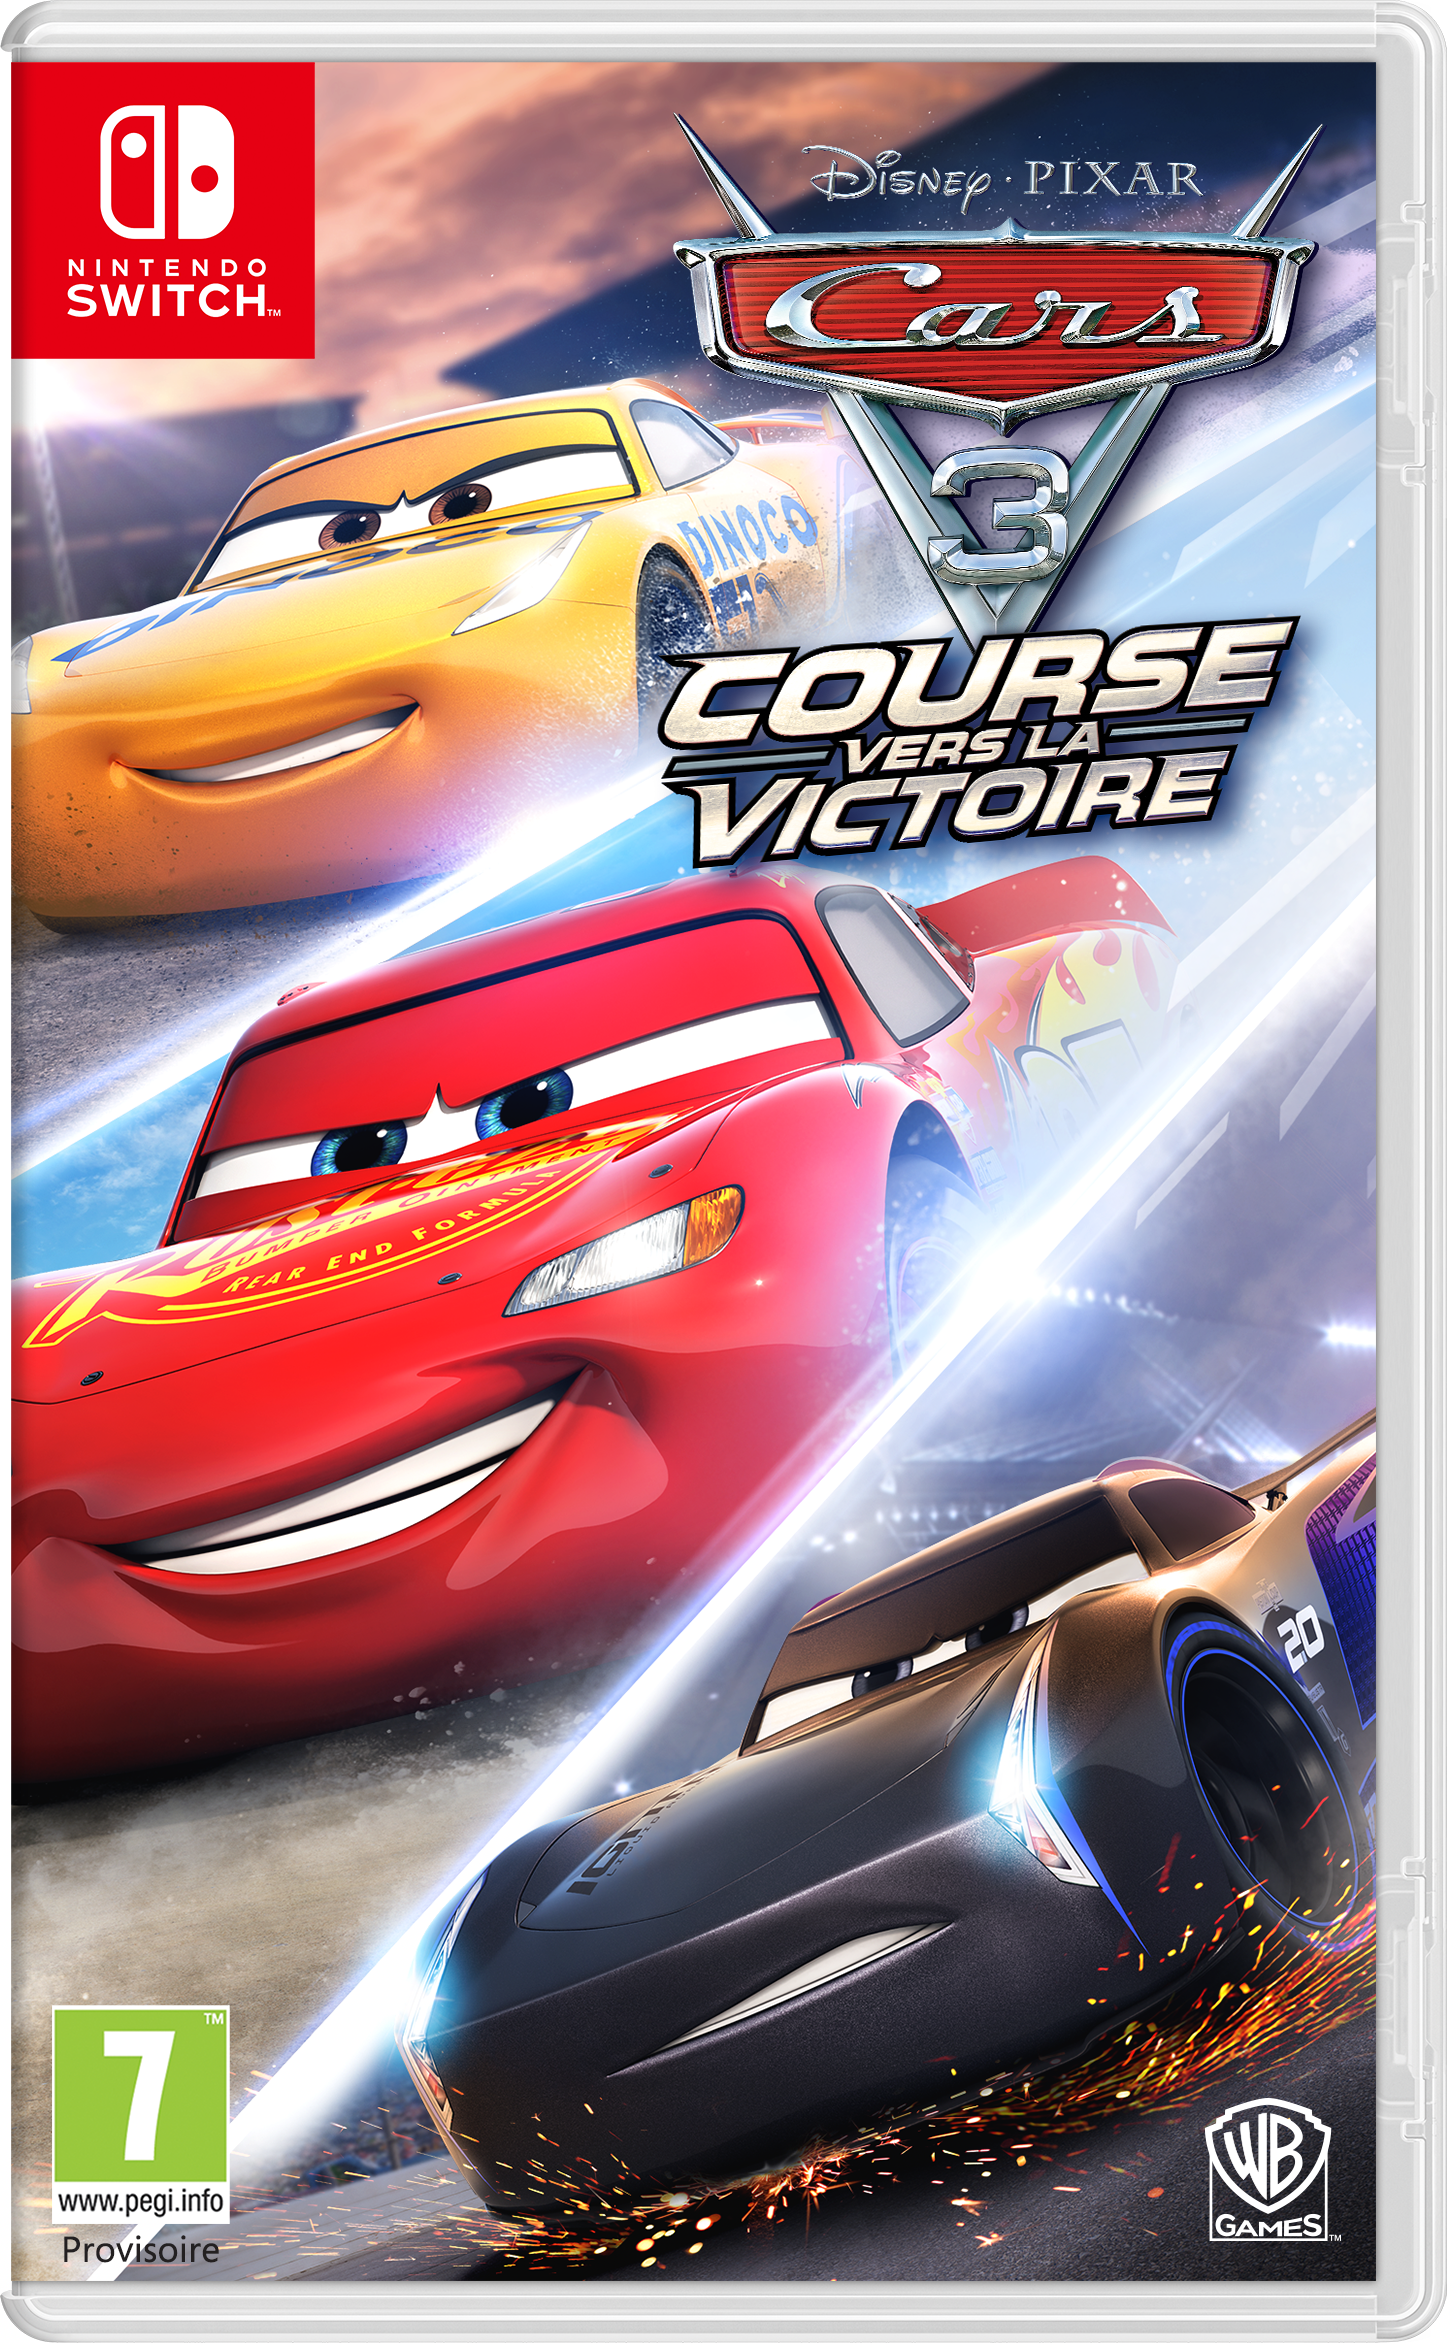 cars 3 course vers la victoire sur nintendo switch. Black Bedroom Furniture Sets. Home Design Ideas